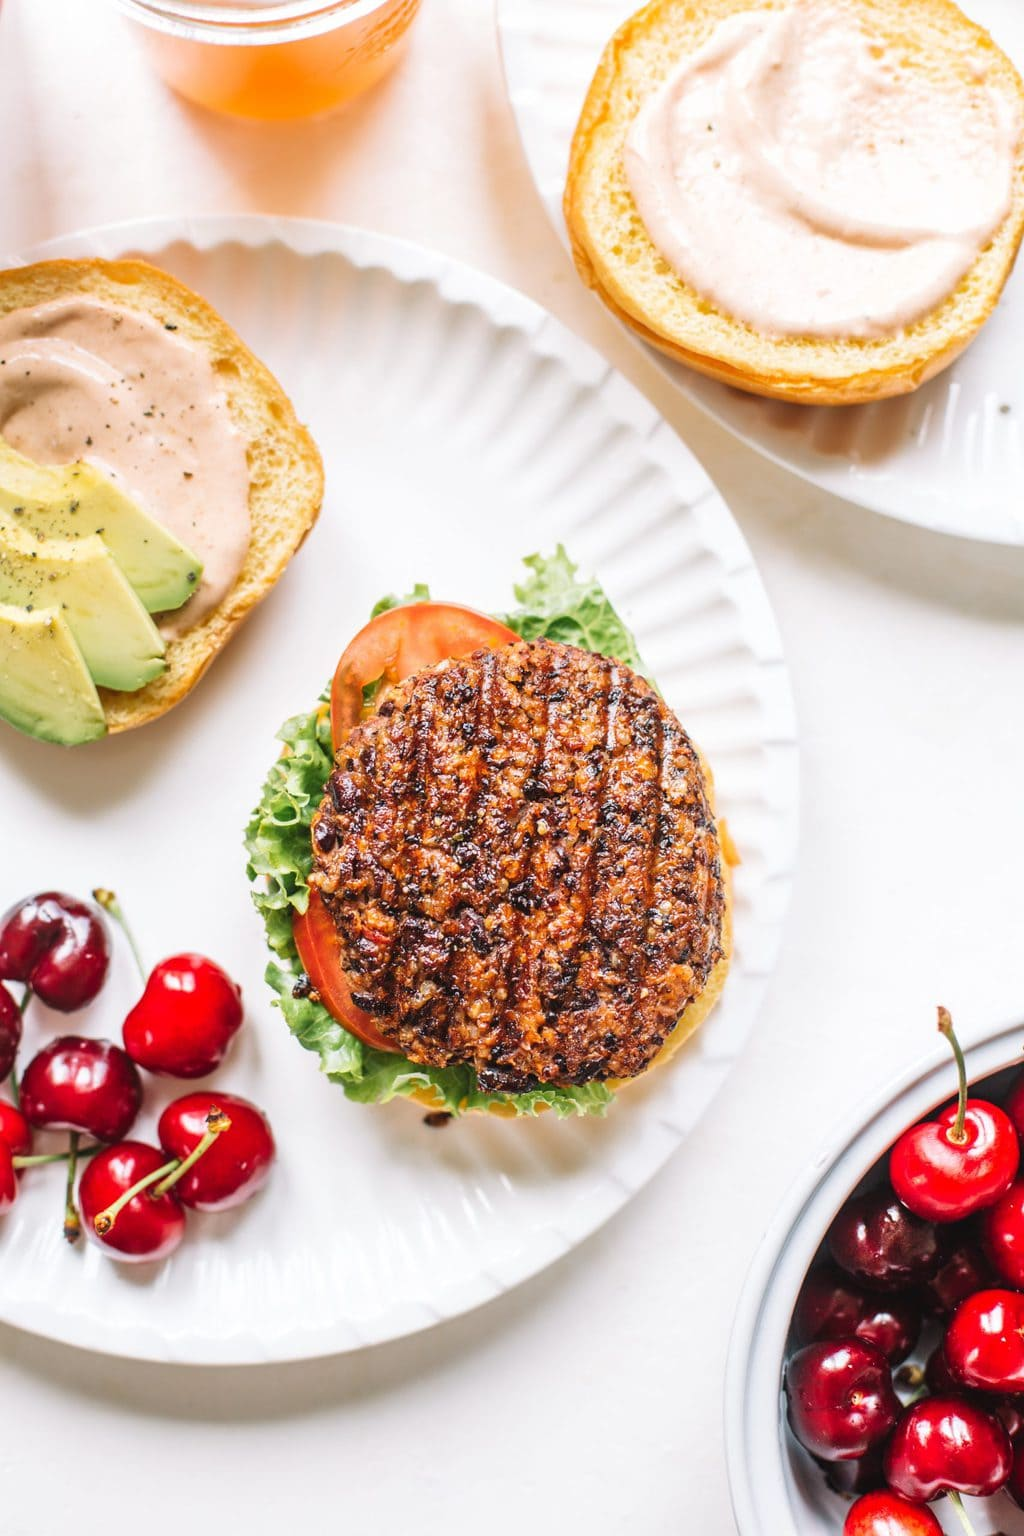 chipotle black bean burger patty on bun with lettuce, tomato, sauce on white plate